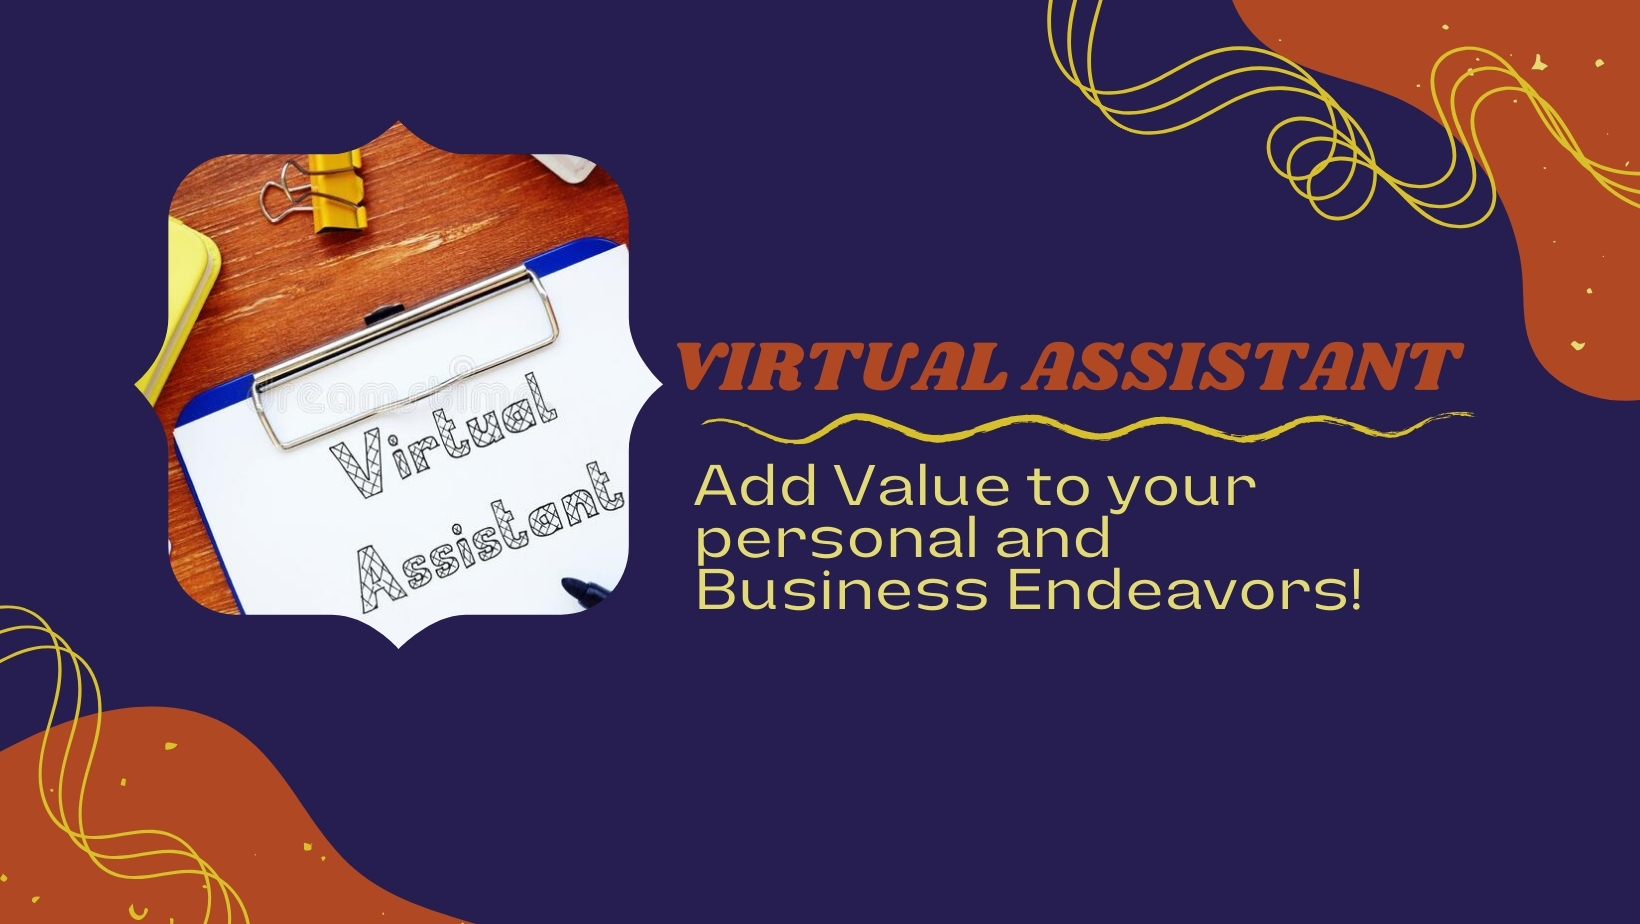 I will be your personal administrative virtual assistant for data entry,  and web research